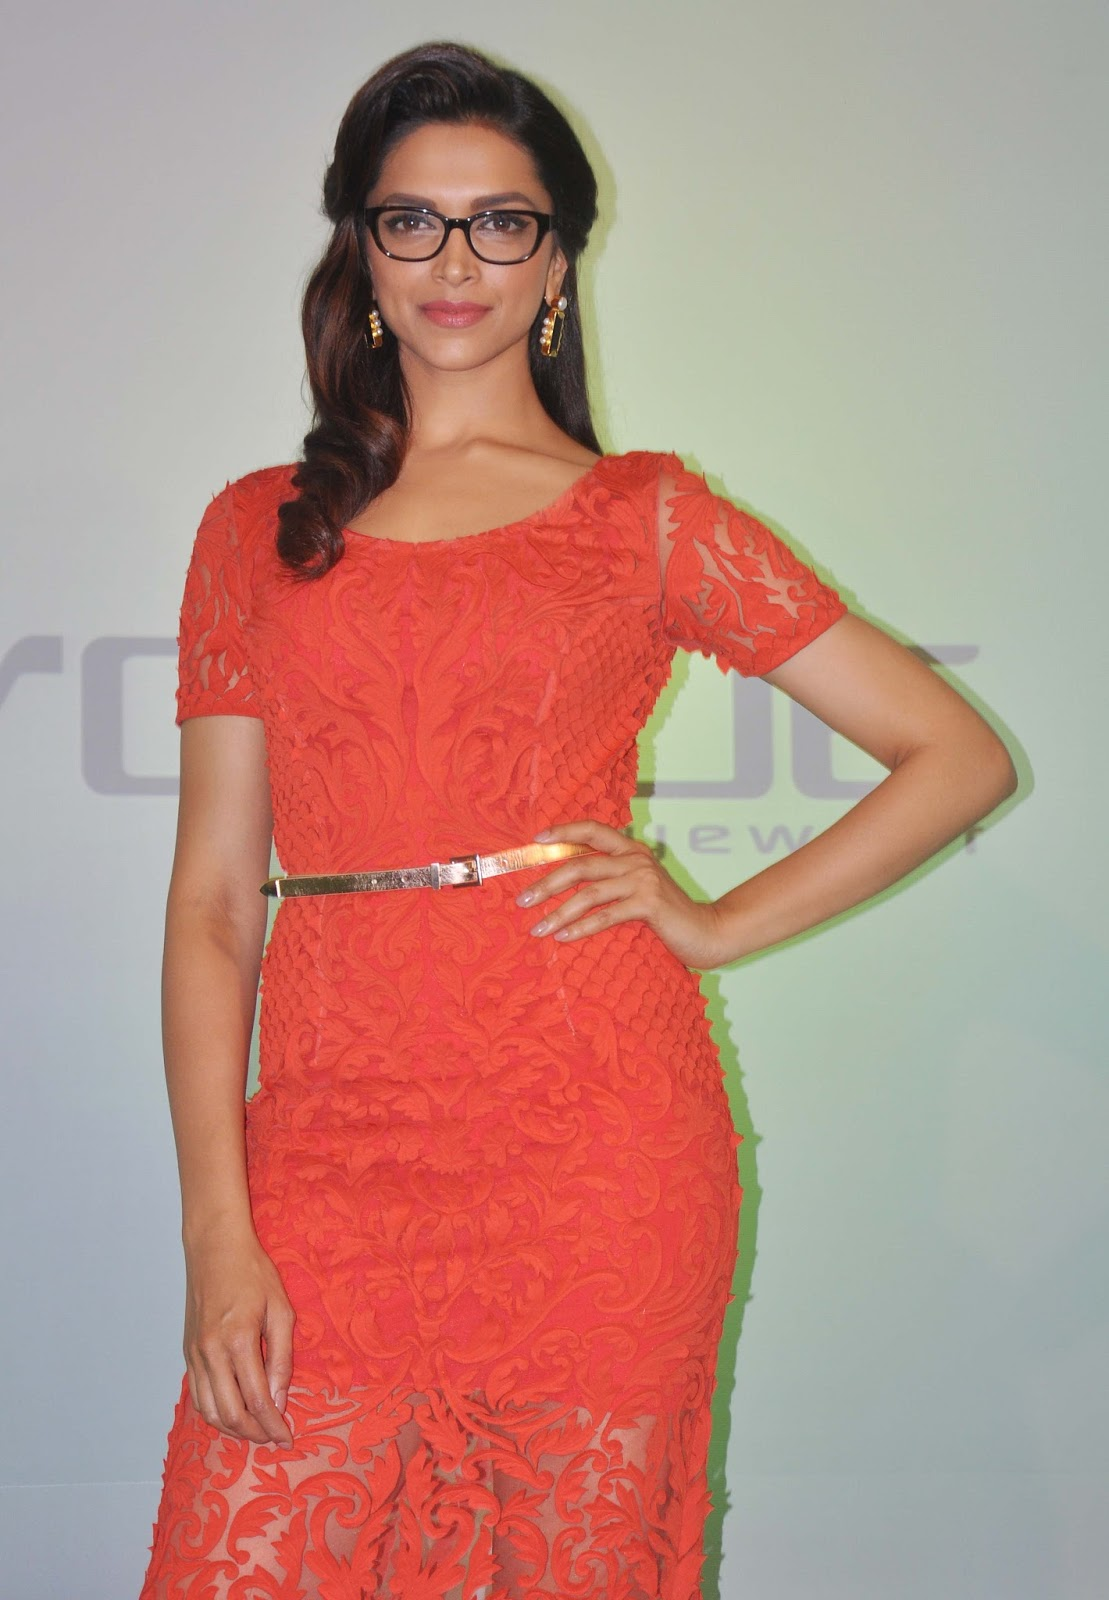 Deepika Padukone Photos In Orange Dress With Glass